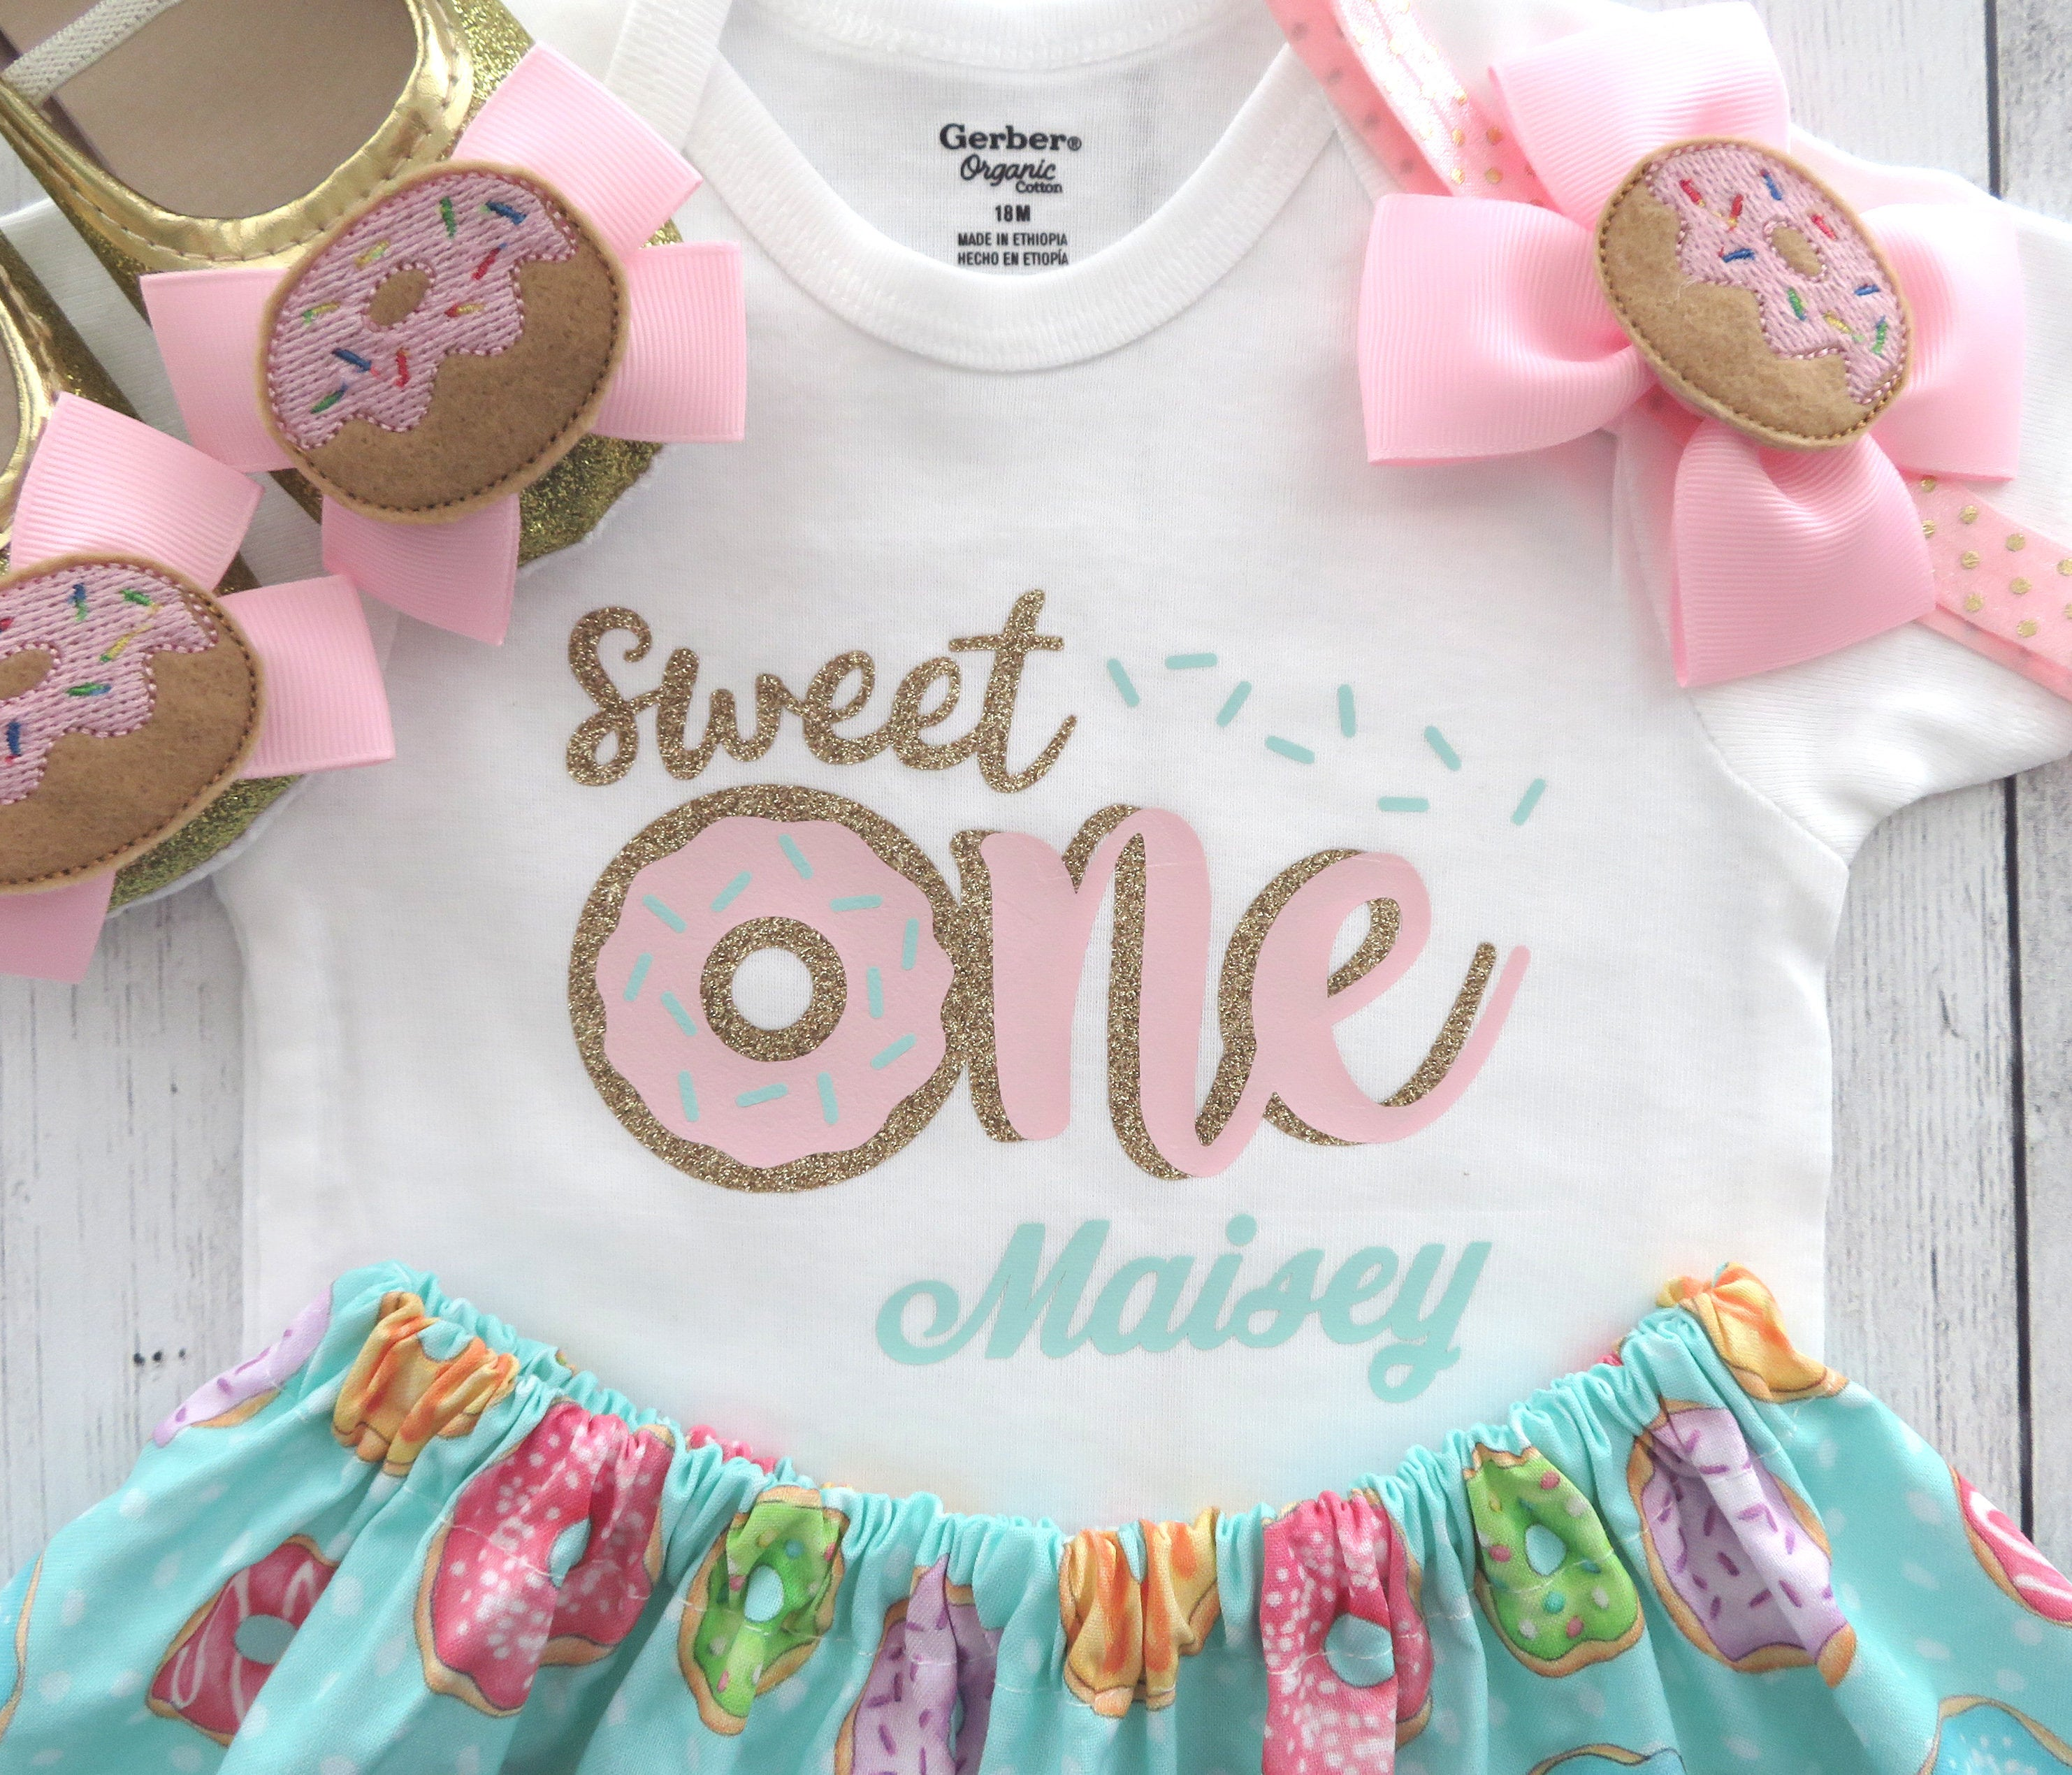 Donut First Birthday Outfit for baby girl - donut grow up, sweet one, donut first birthday party, donut 1st birthday outfit, personalized